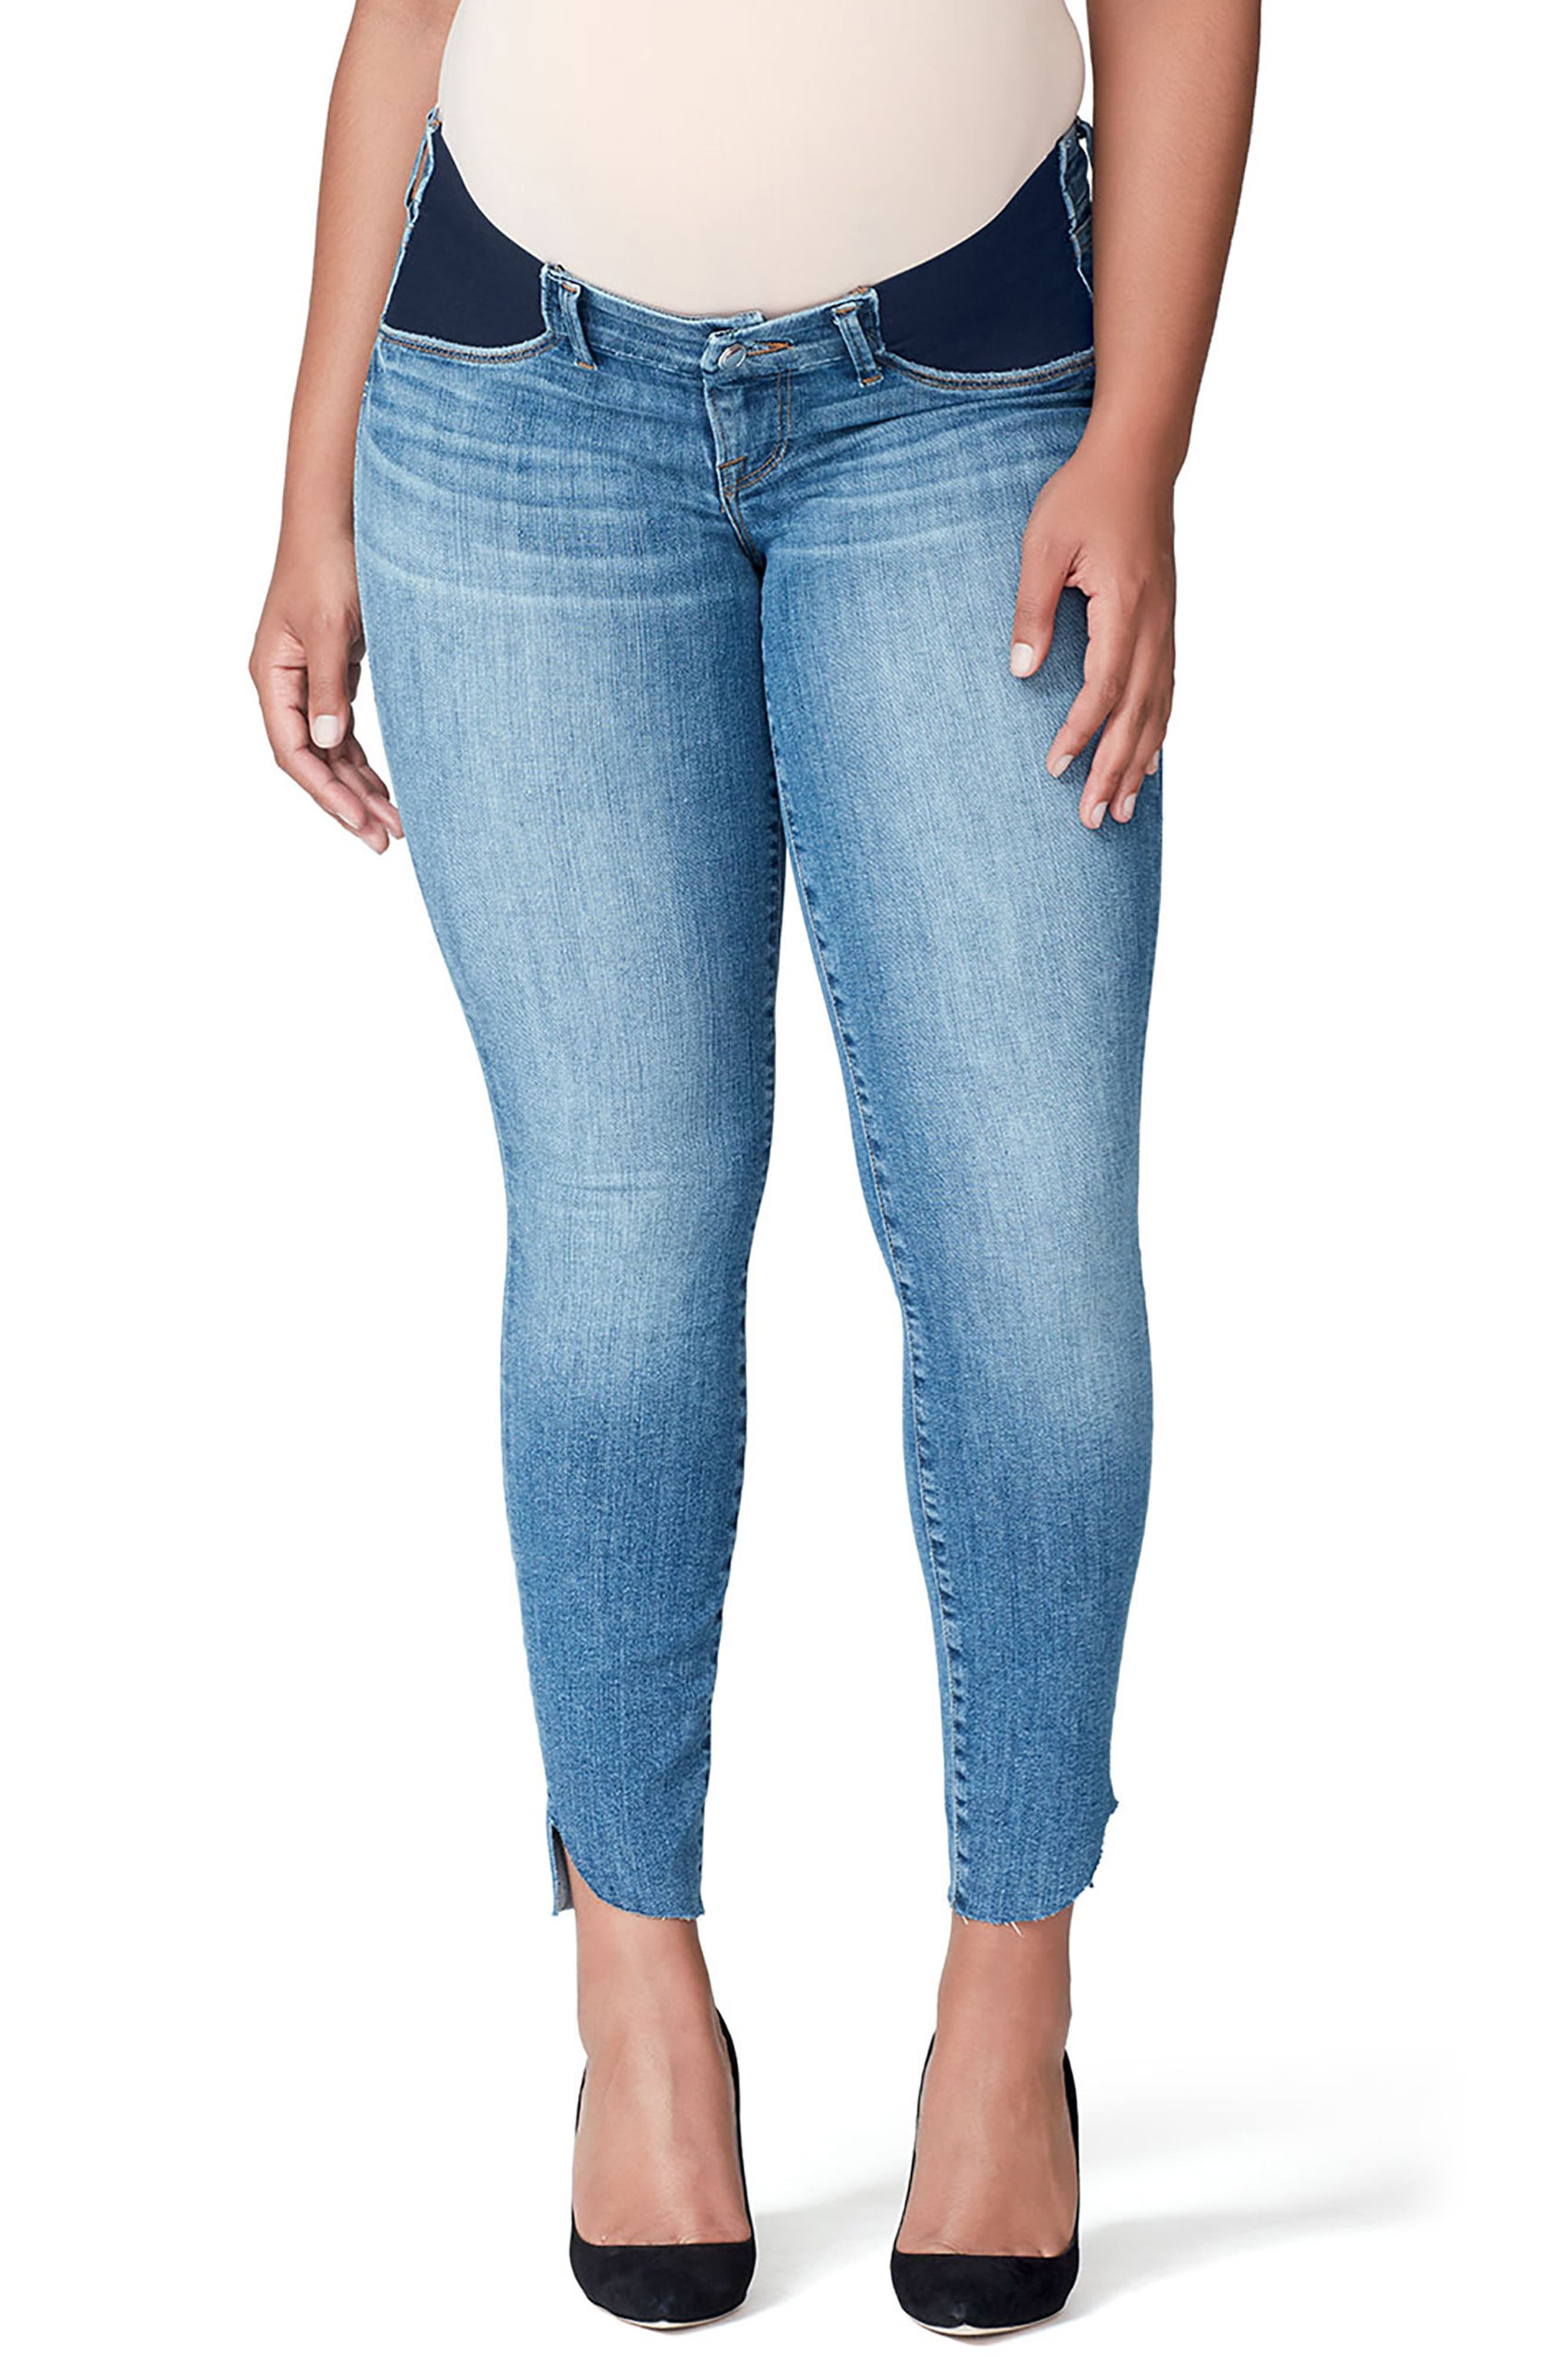 Good Mama The Honeymoon Low Rise Cascade Hem Maternity Skinny Jeans,                             Main thumbnail 1, color,                             BLUE